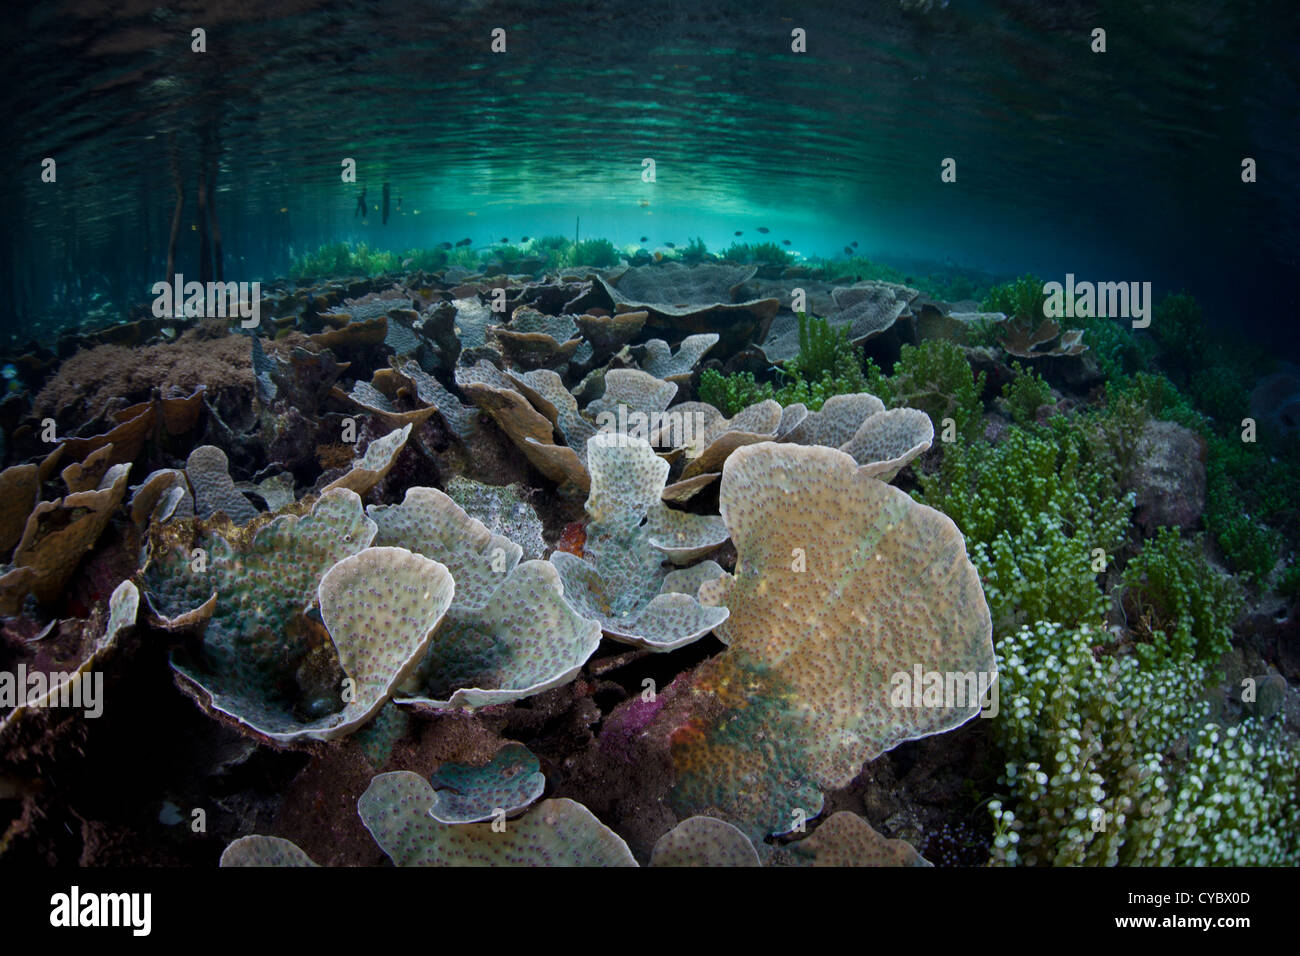 Foliose corals grow in the shallows near the shadows of a mangrove forest in Alyui Bay, Raja Ampat, Indonesia. Stock Photo